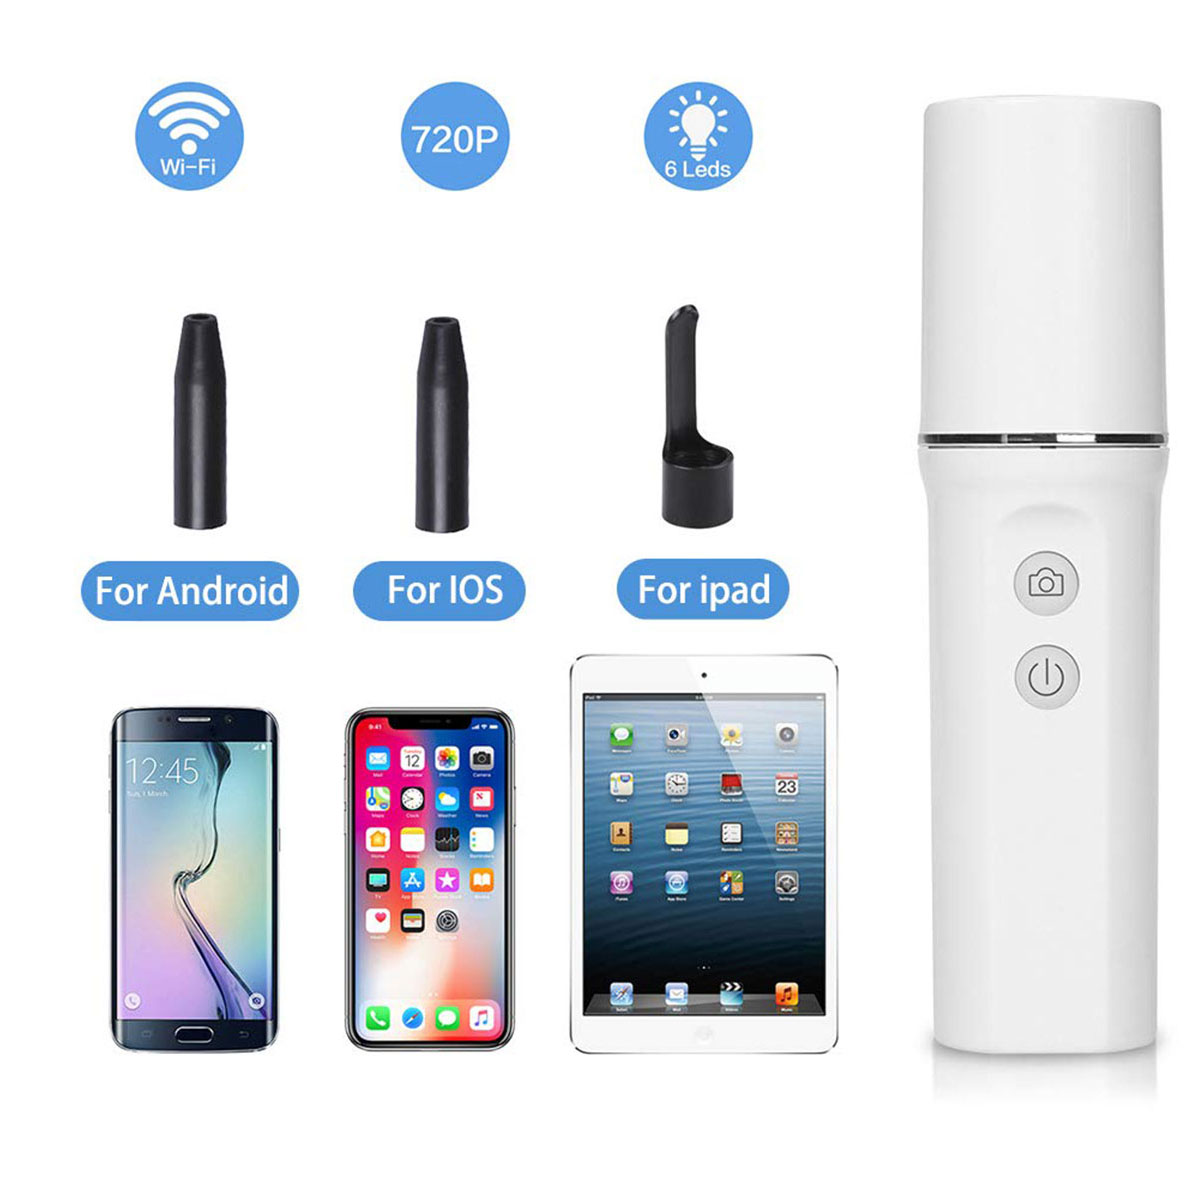 WiFi Ear Otoscope Wireless HD720P Digital Endoscope Ear Inspection Camera Earwax Cleaning Tool with 6 Led for IOS & Android Use